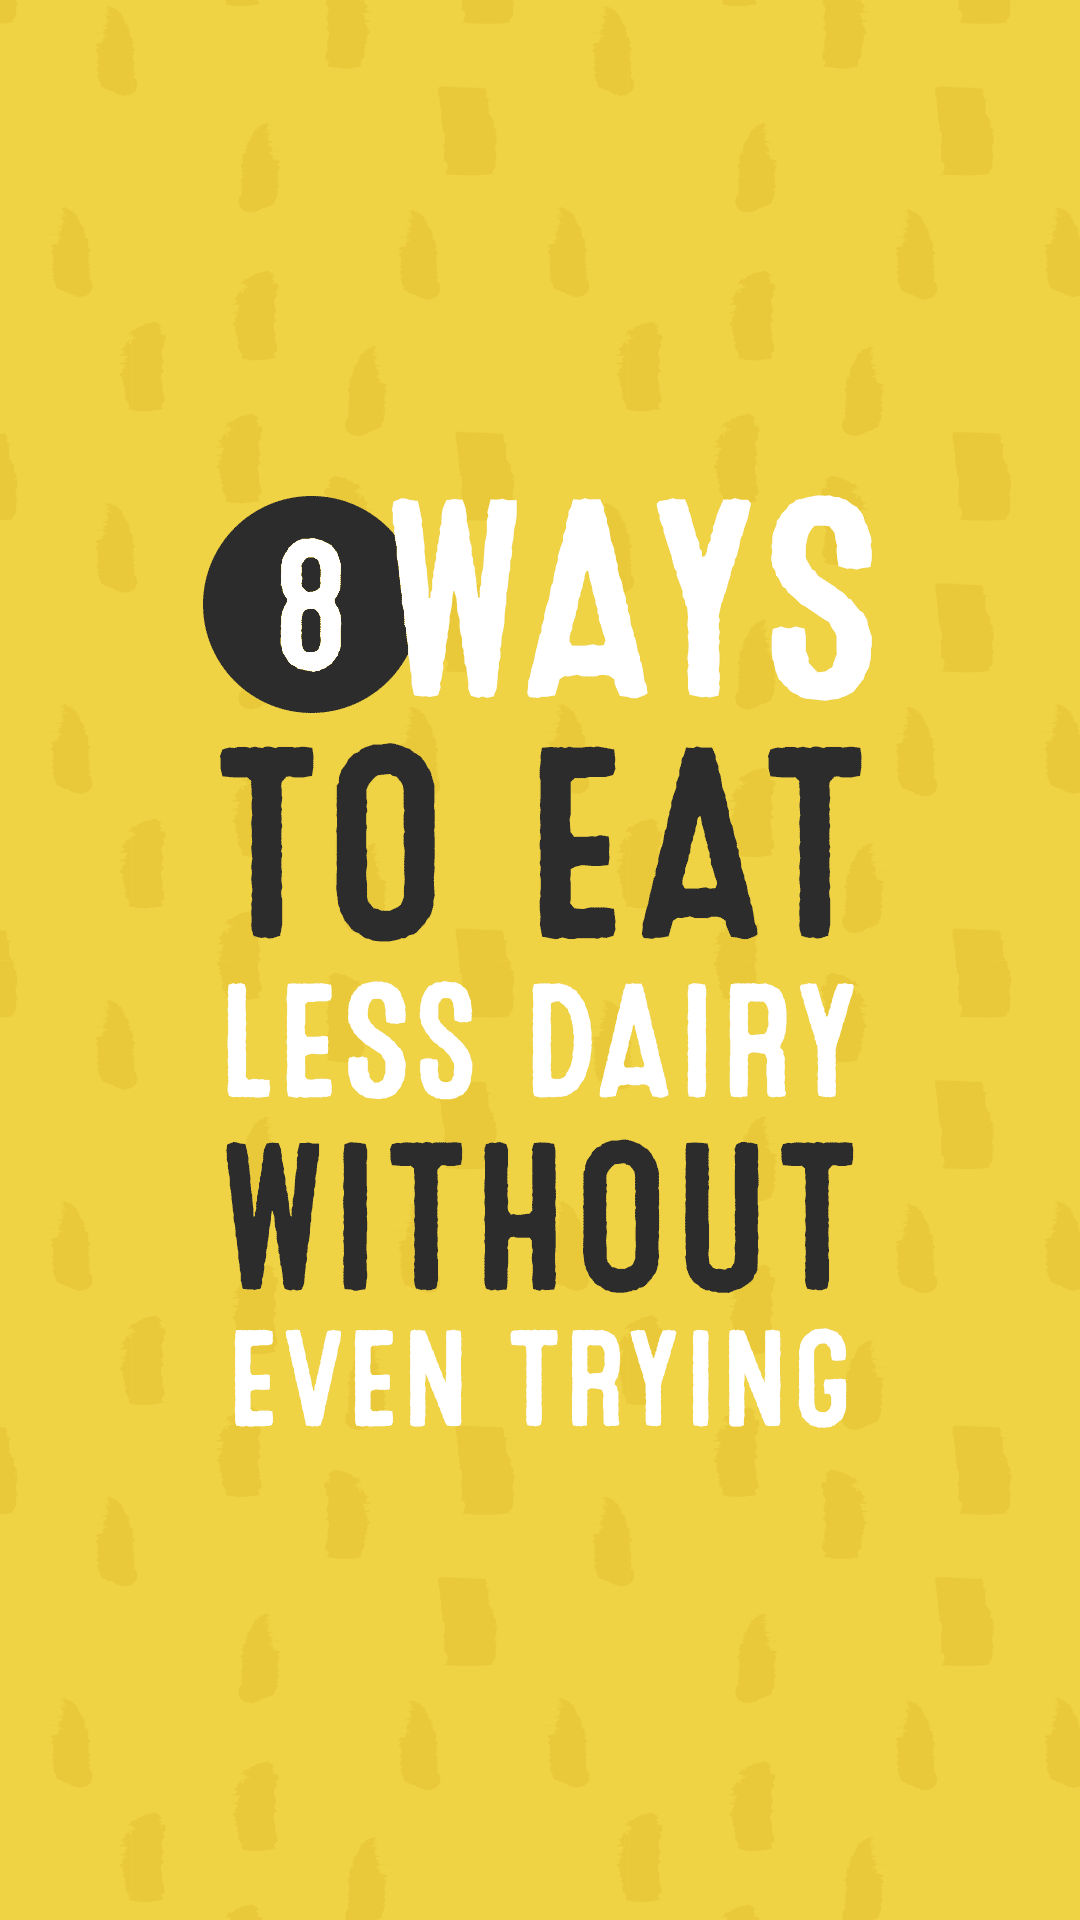 8 Ways to Eat Less Dairy Without Even Trying